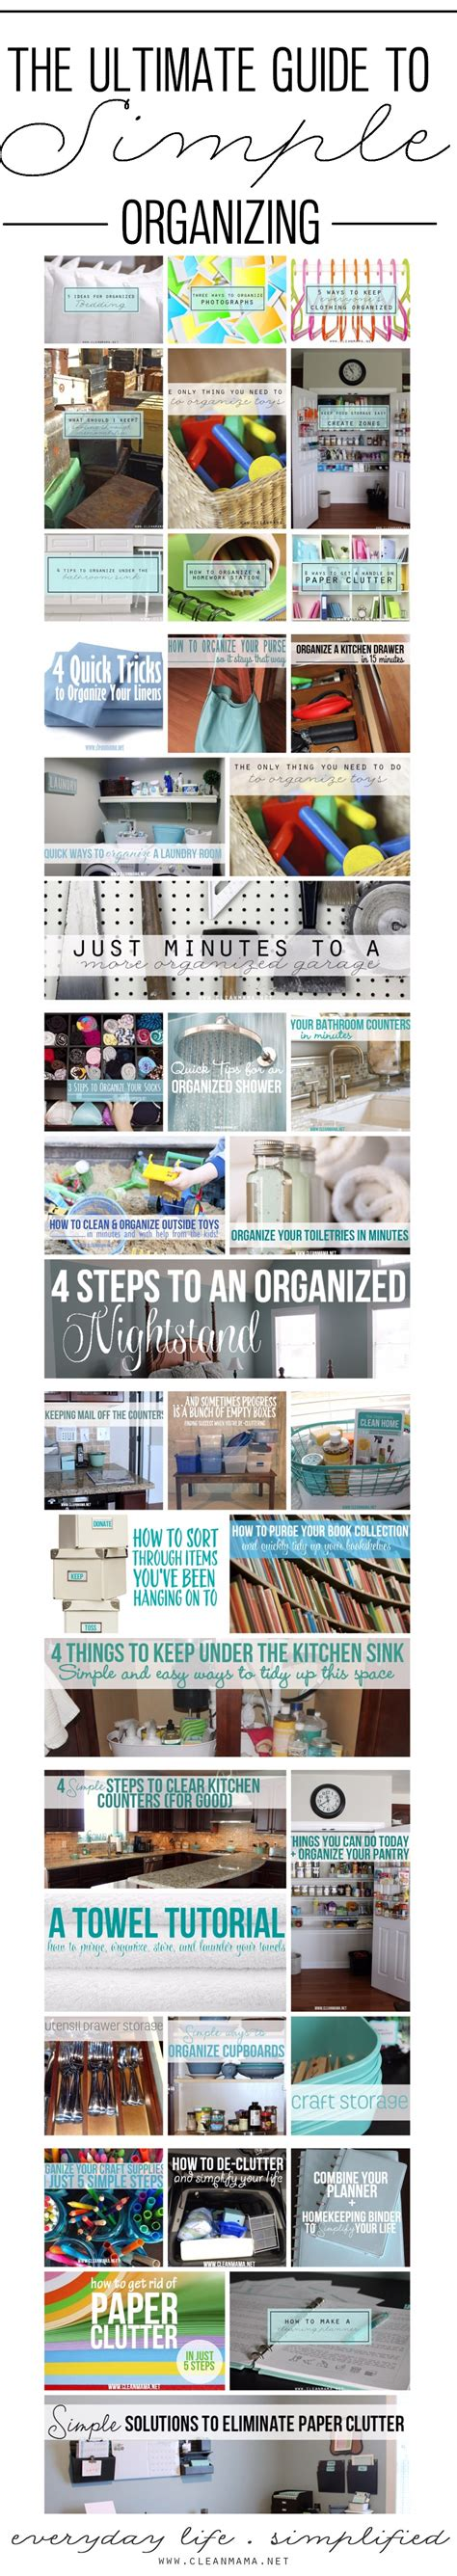 the ultimate guide to organize every room in your home 1150 ideas digsdigs the ultimate guide to simple organizing clean mama